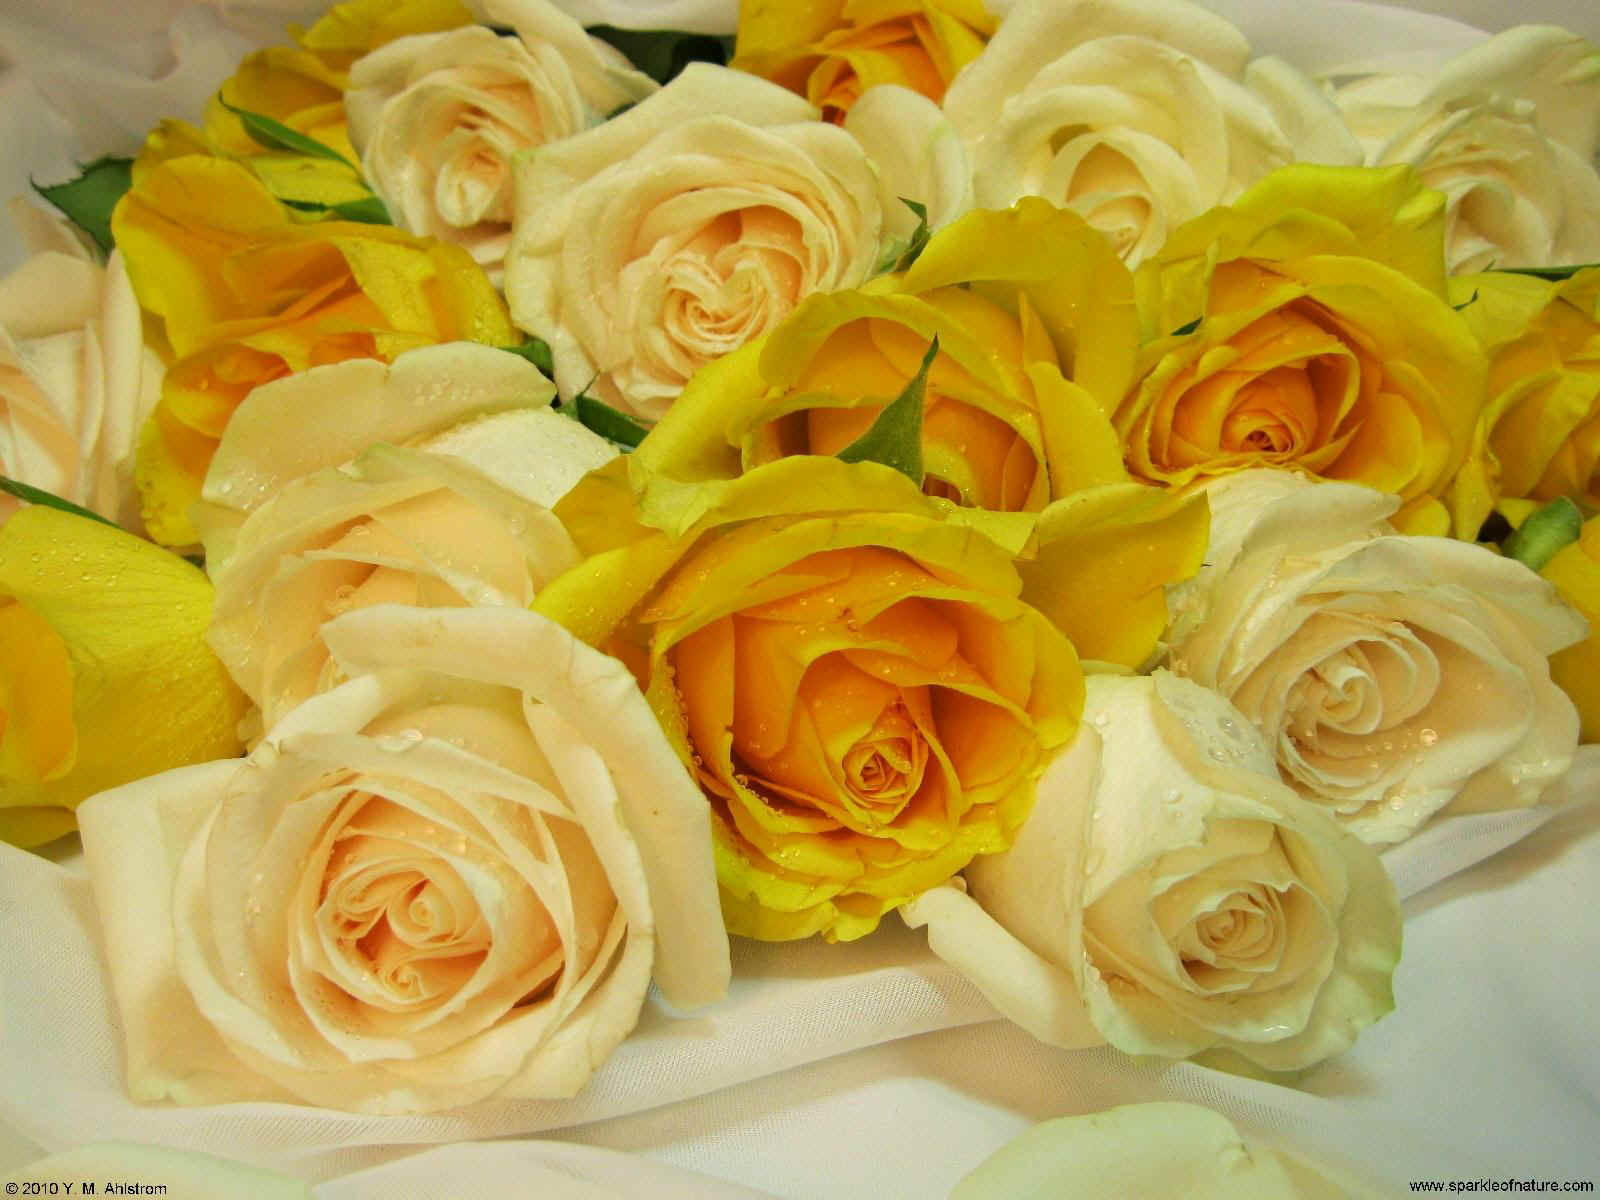 21368 yellow and cream roses 2 1600x1200.jpg (214550 bytes)